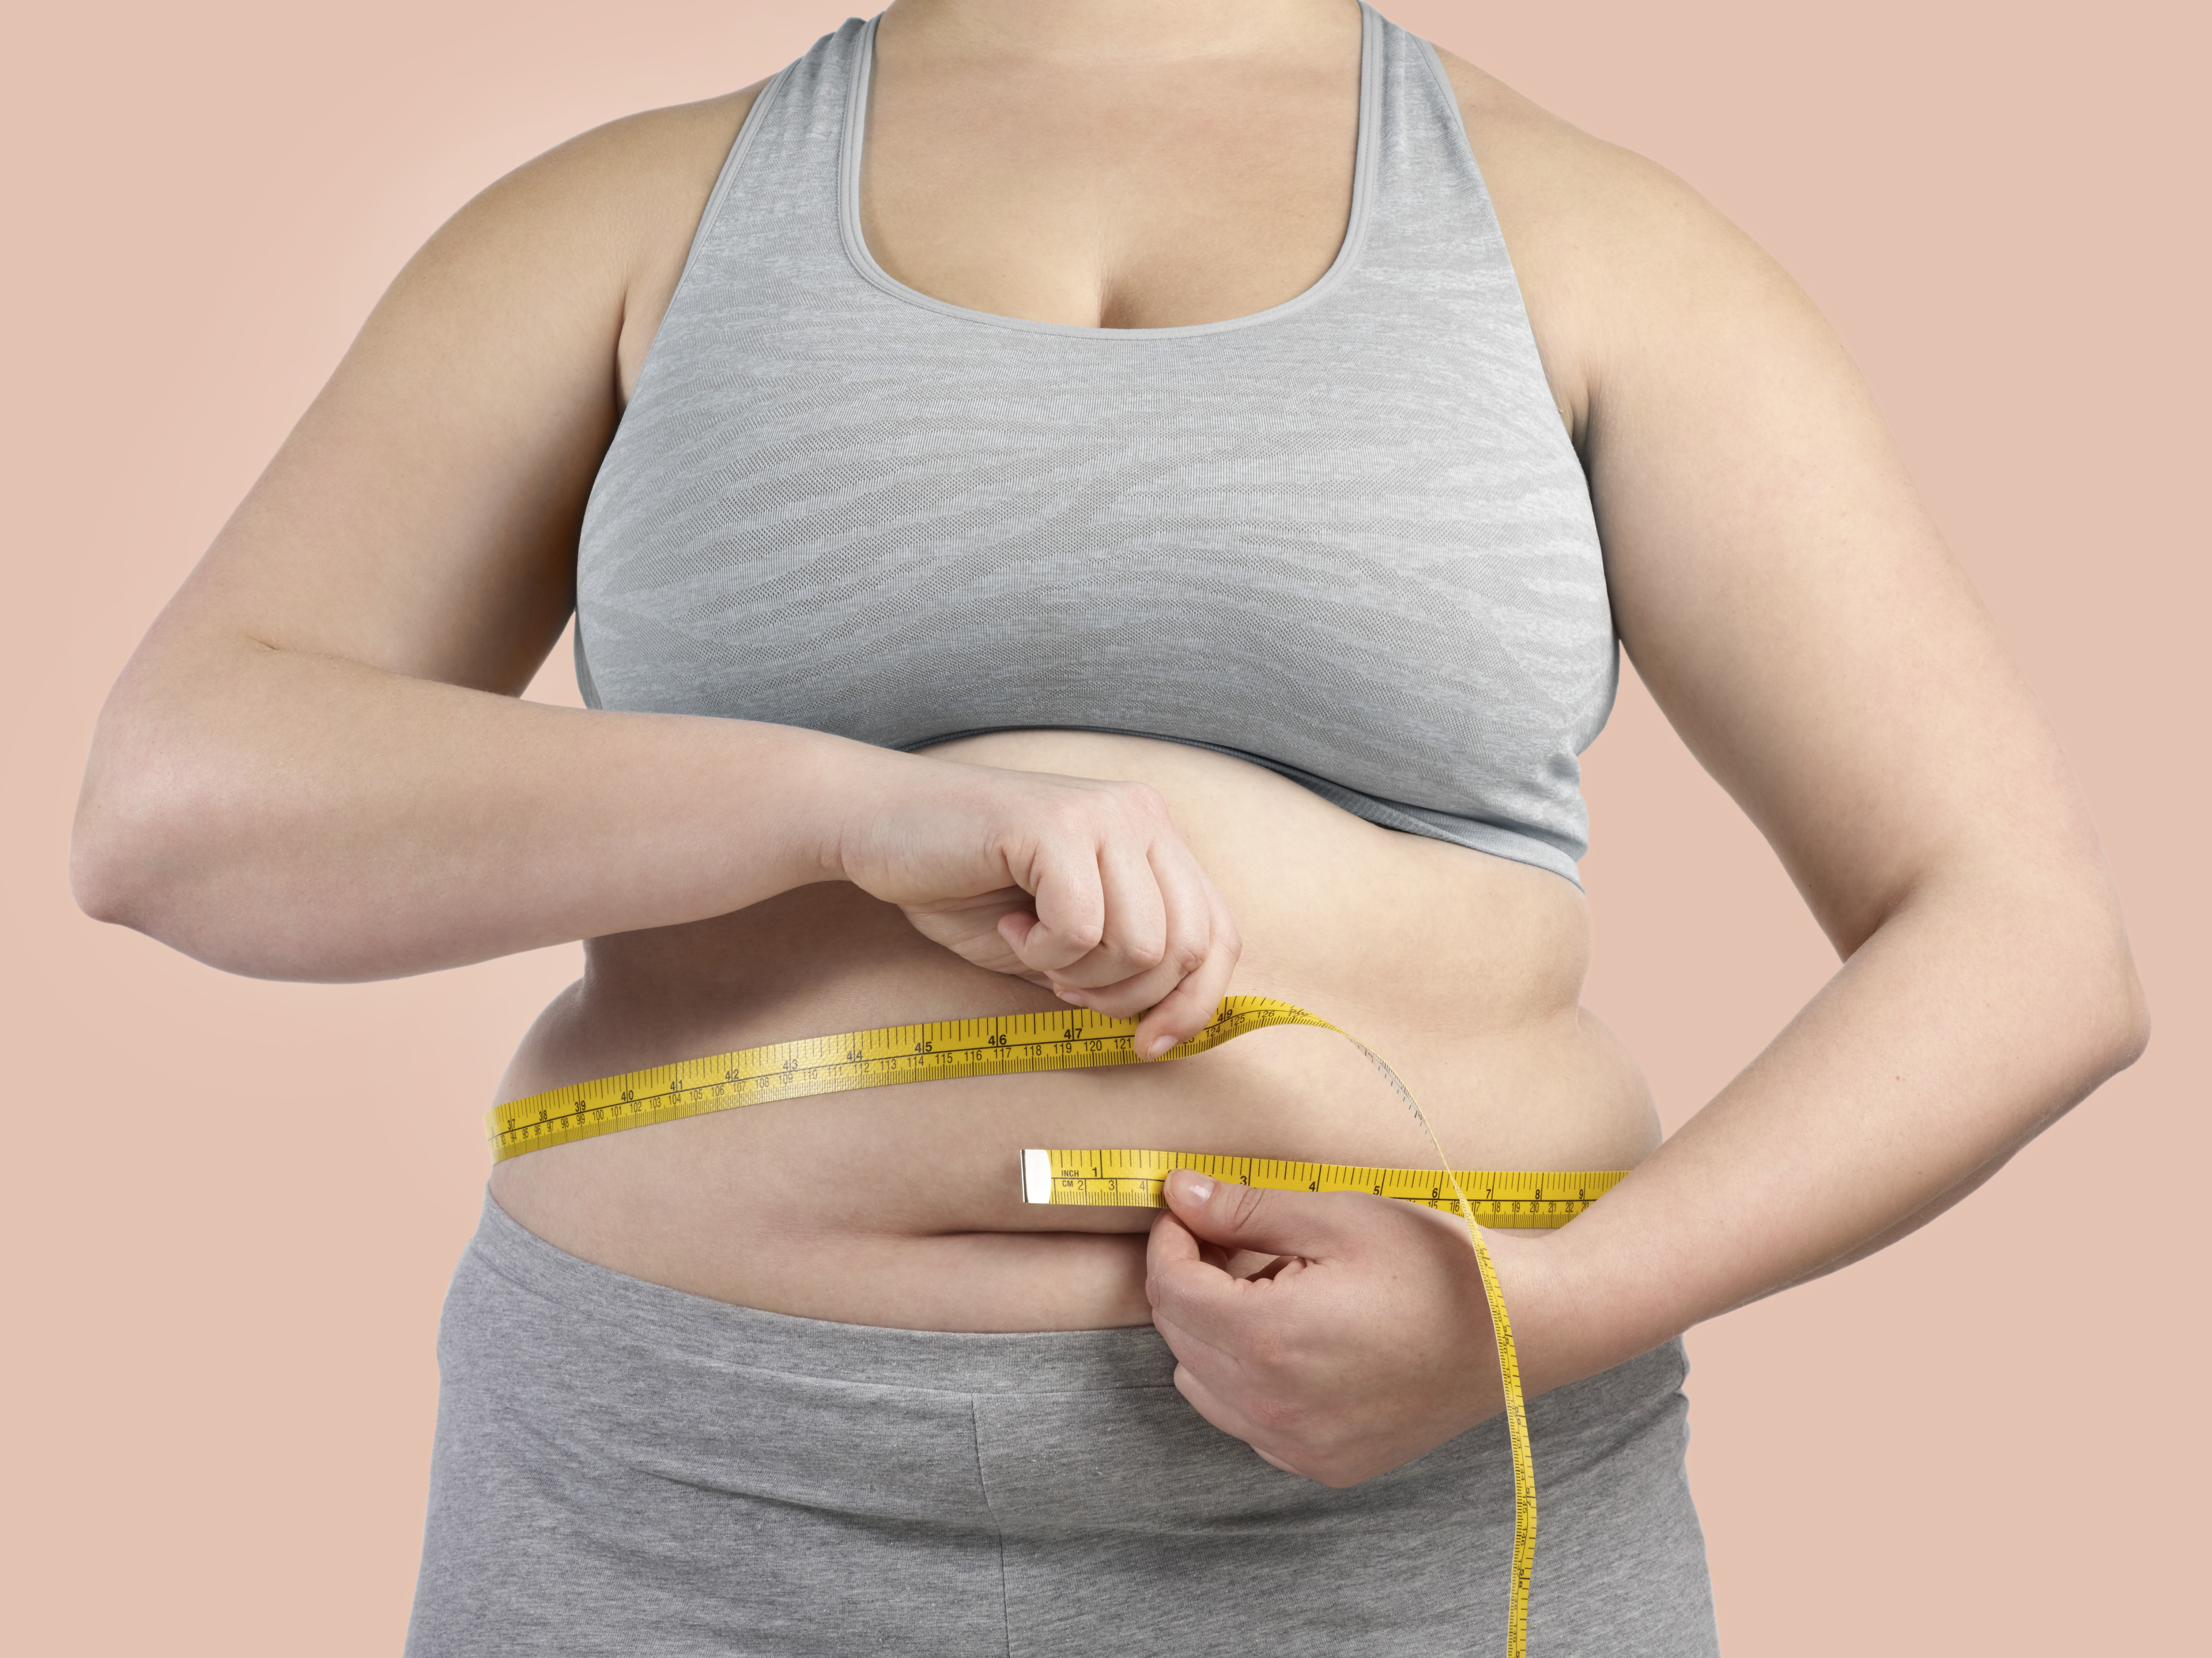 Overweight woman measuring her waist with a tape measure.